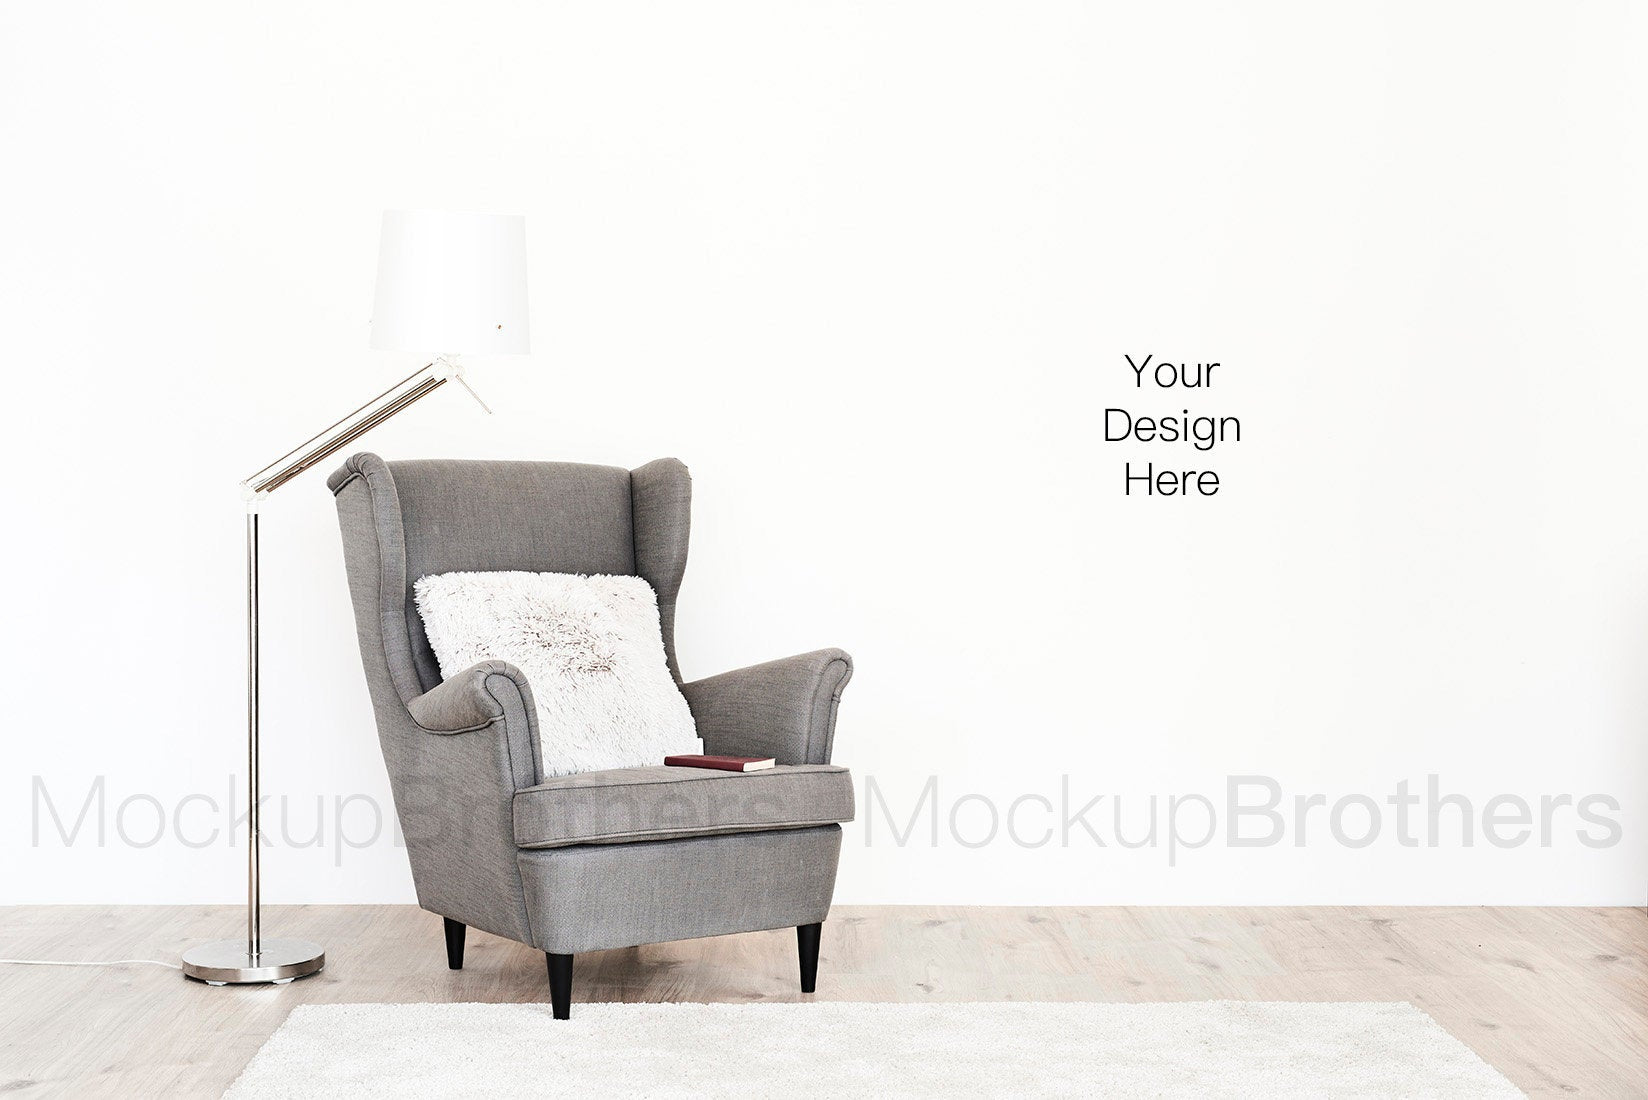 Room mock up with blank wall for posters by mockup Brothers